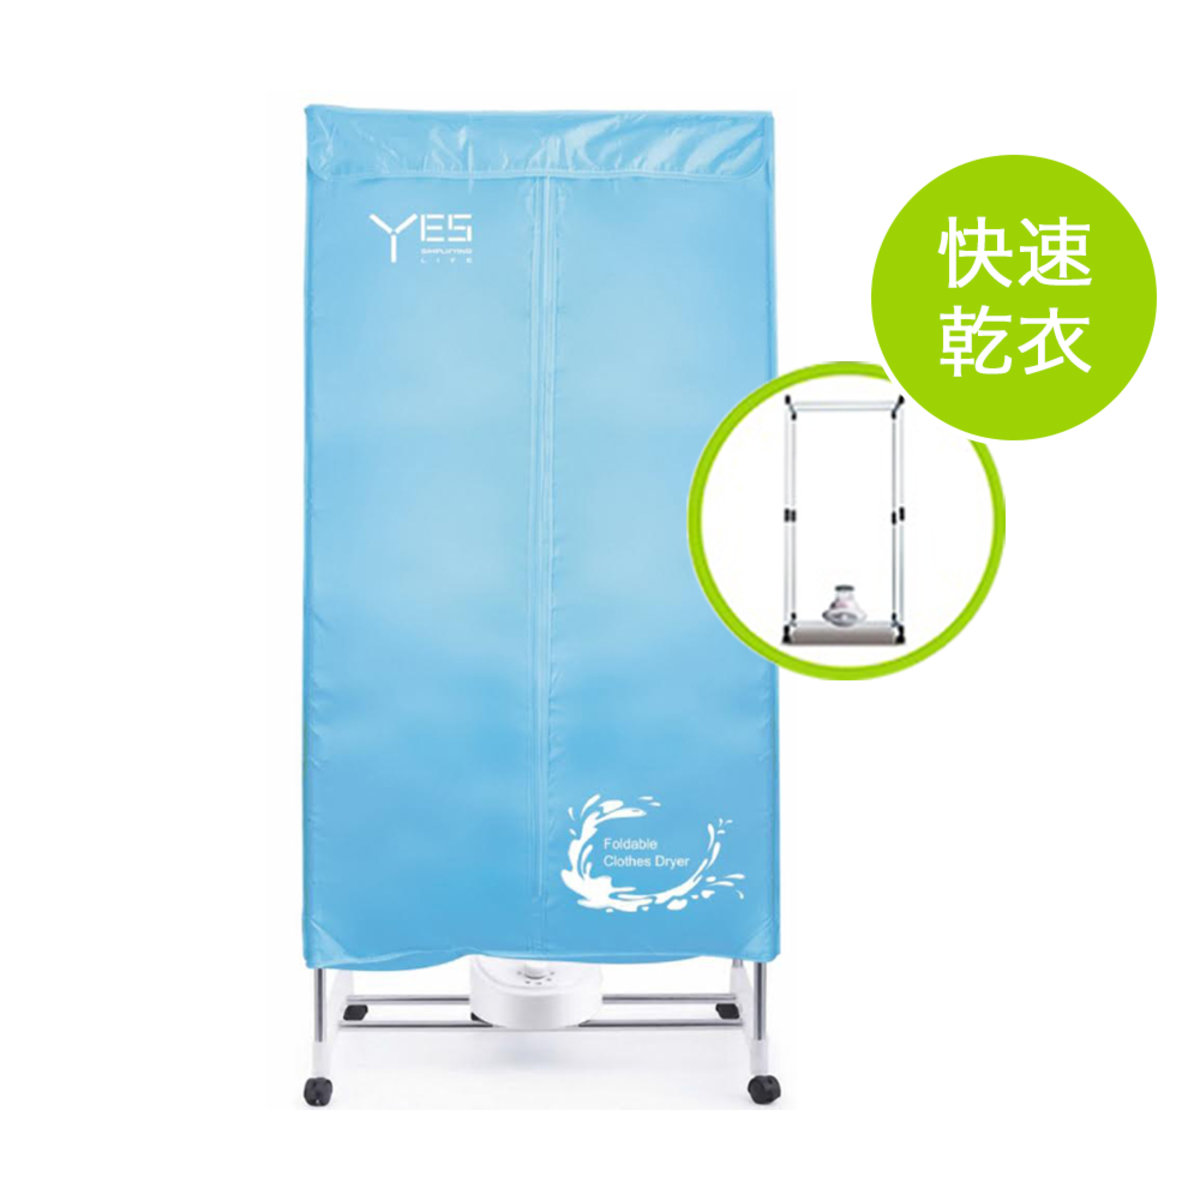 Foldable clothes dryer - YHA-CD801F